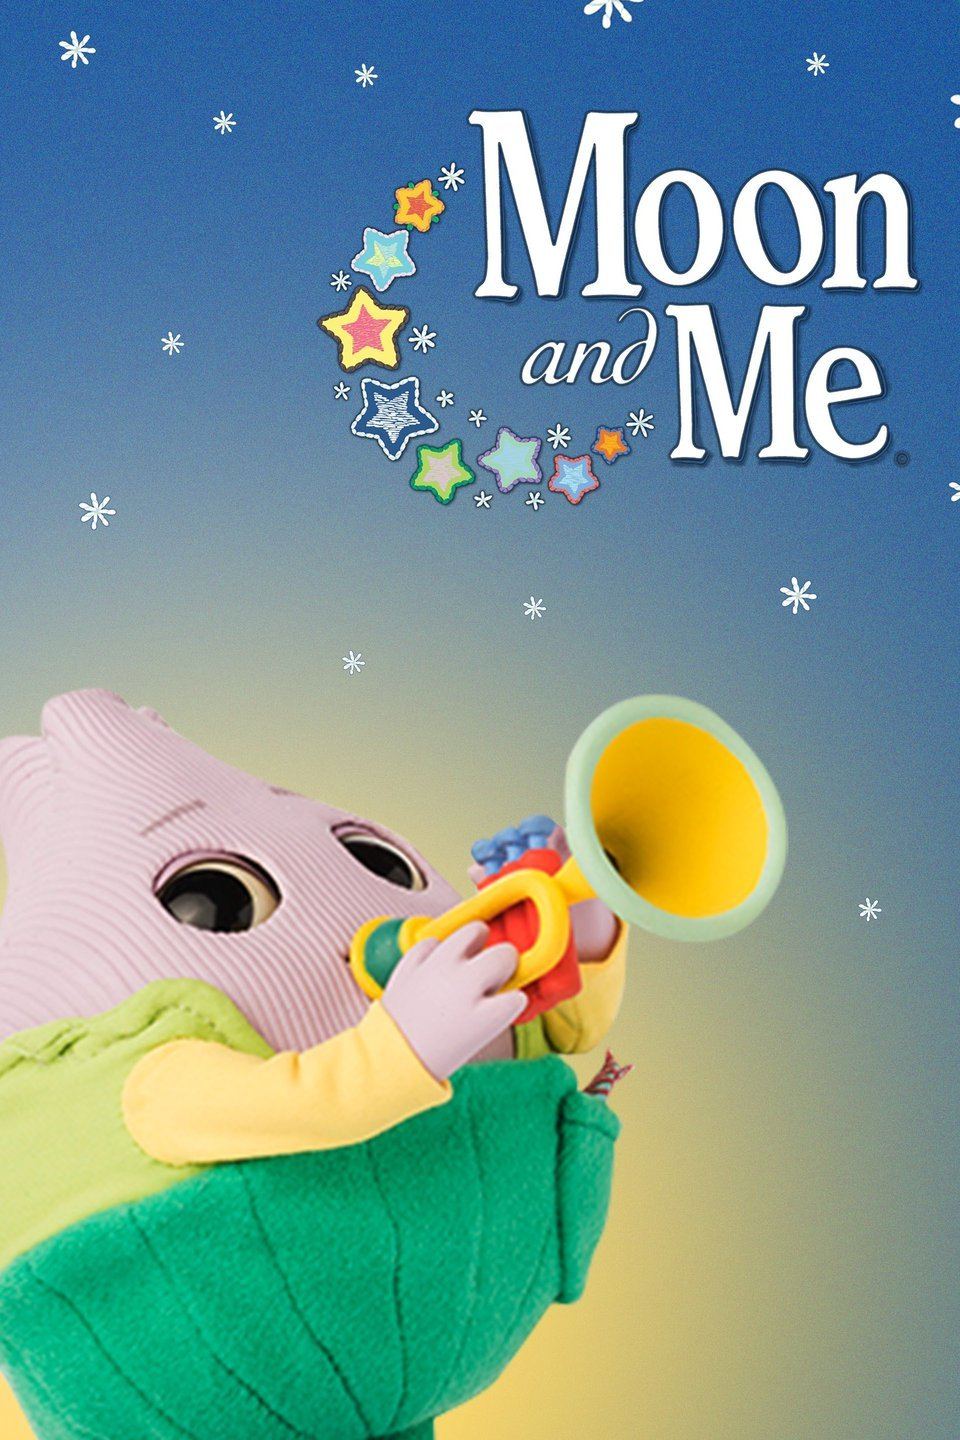 Moon and Me